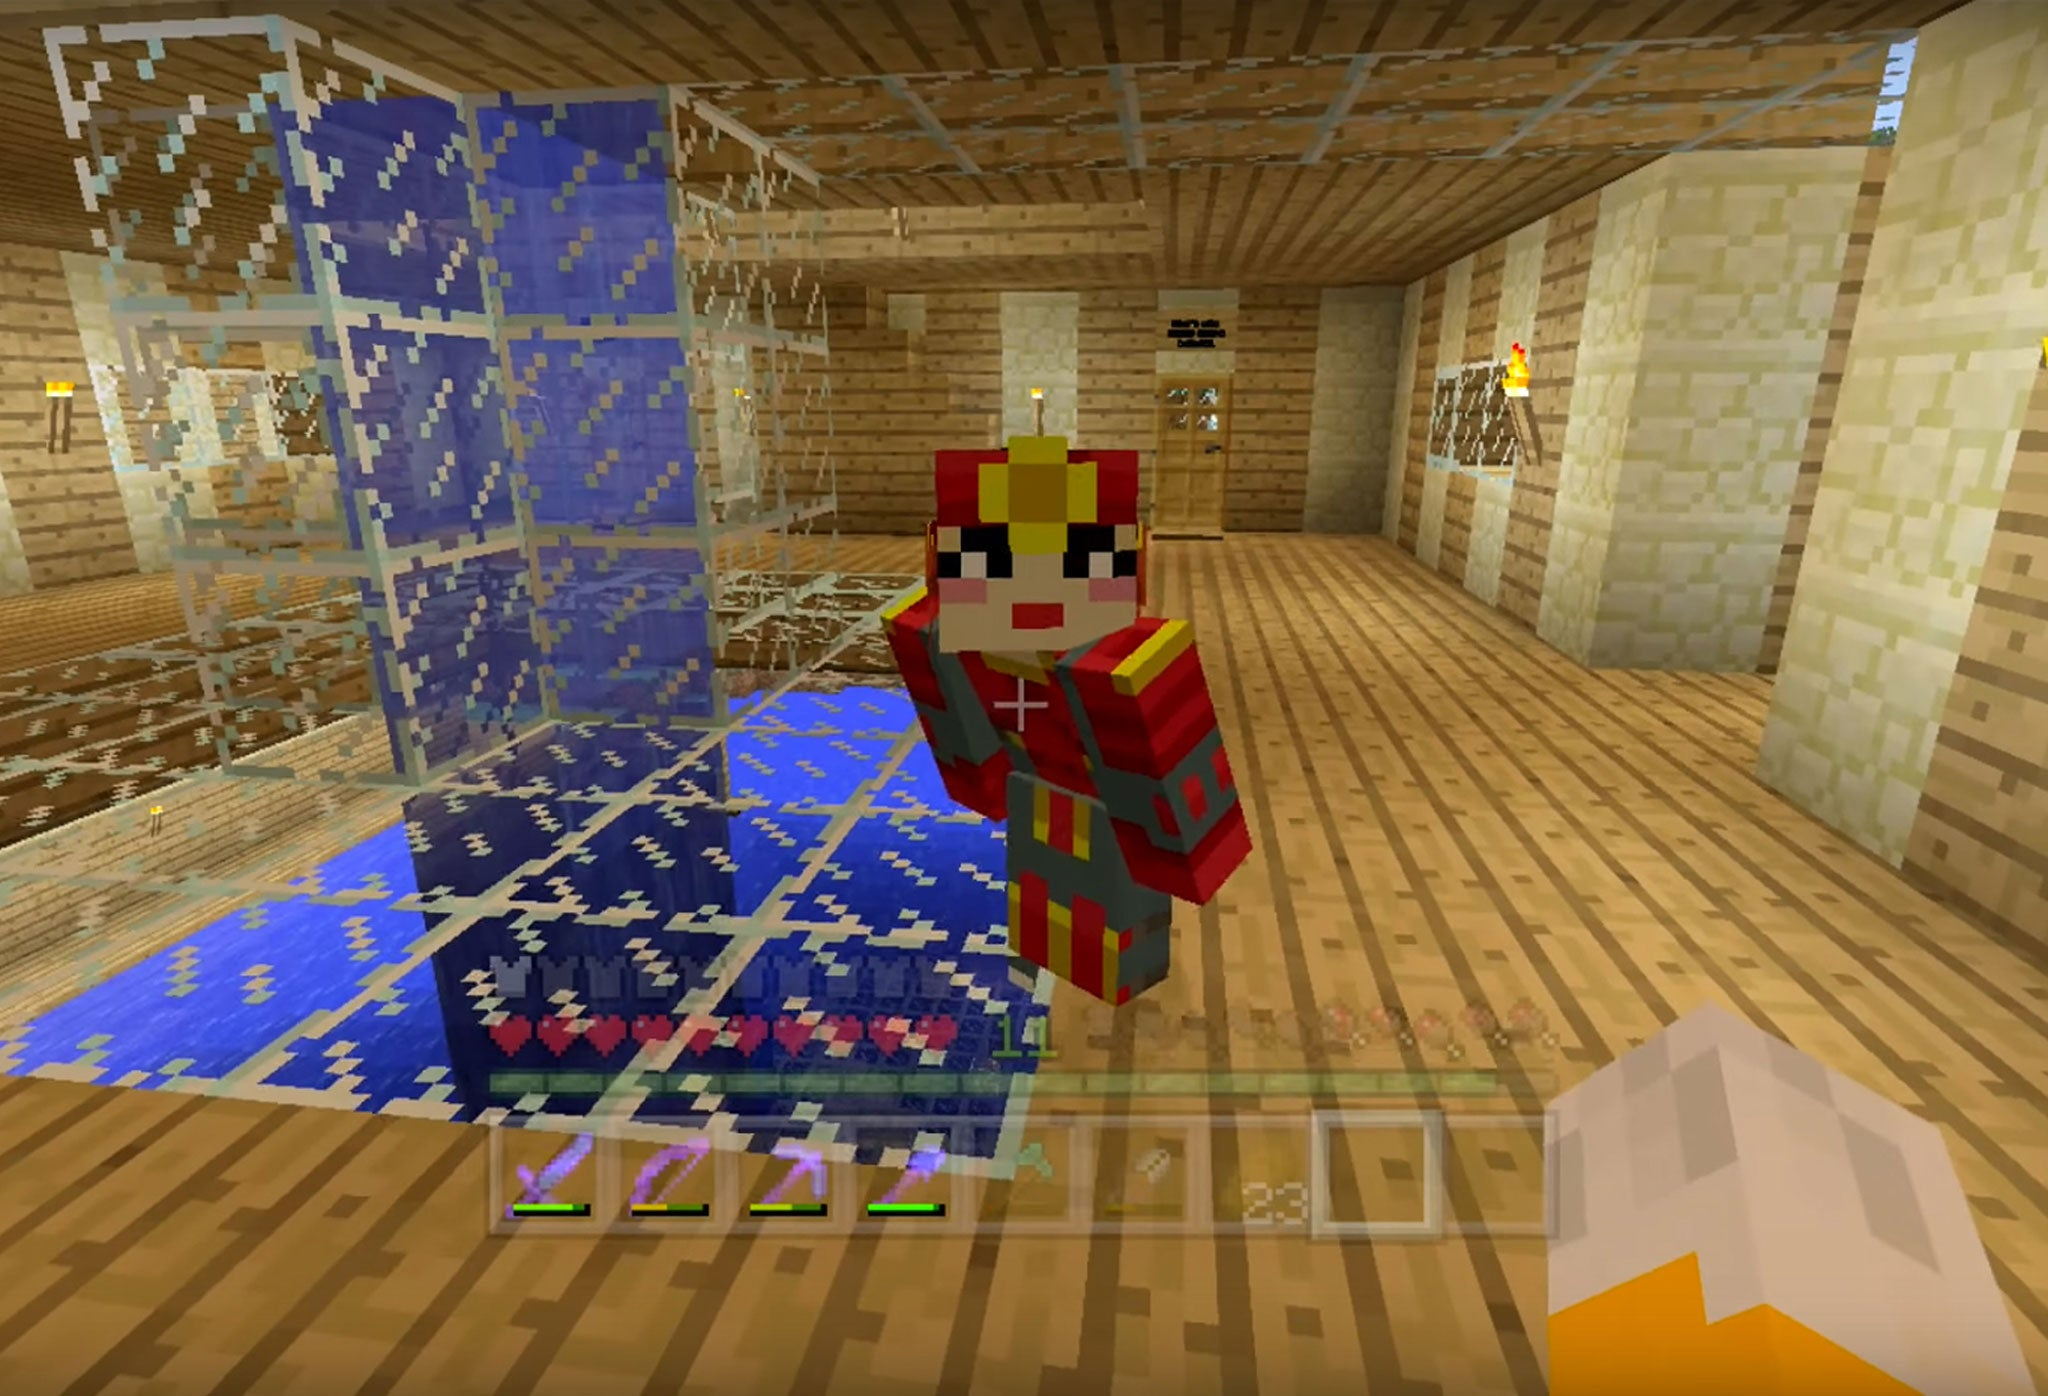 Stampy Cat: Minecraft vlogger Joseph Garrett is the name on every